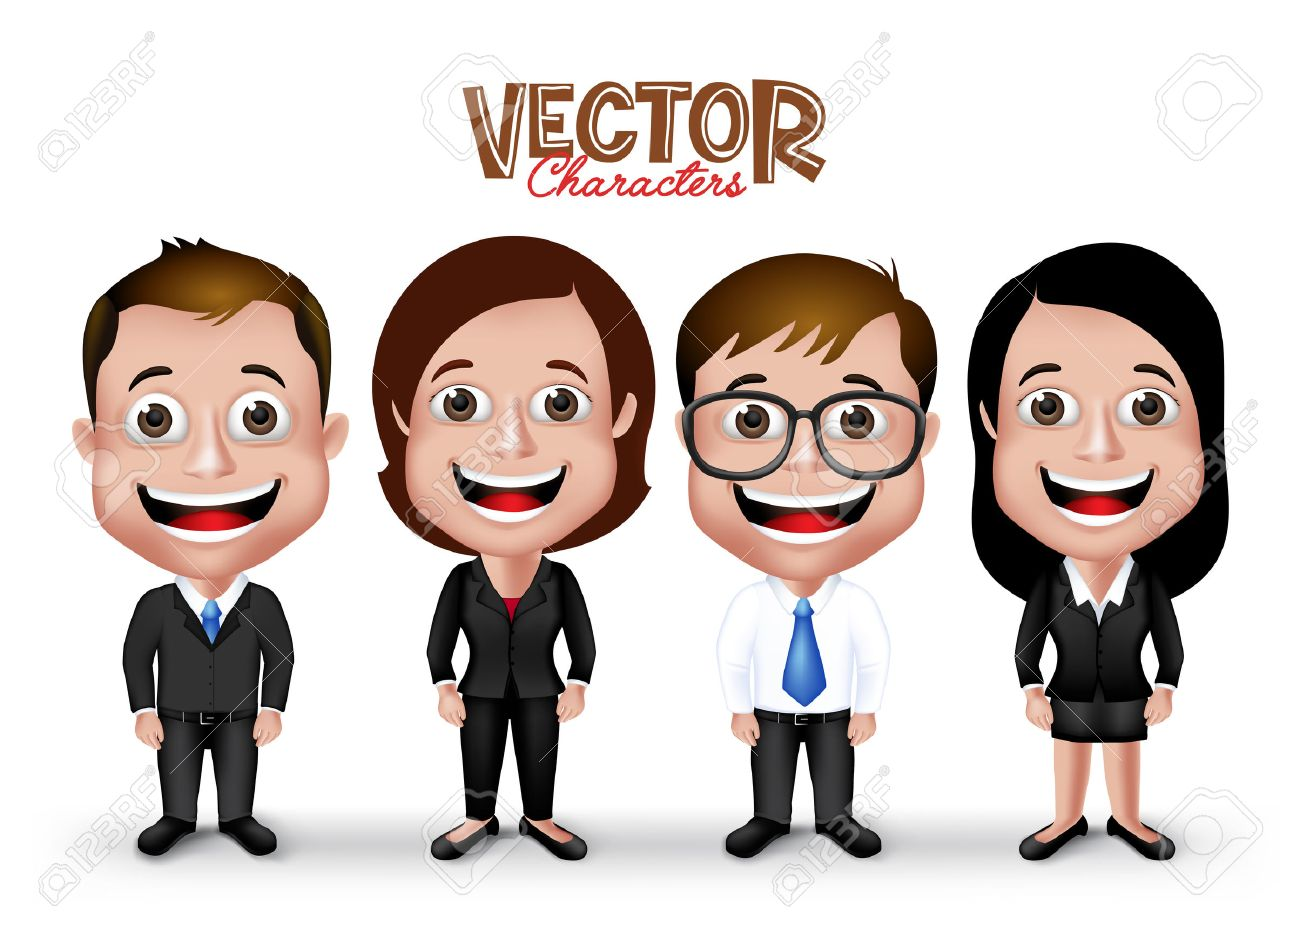 Set of Realistic 3D Professional Man and Woman Characters Happy Smiling in Formal Dress Attire for Business Isolated in White Background. - 43261088